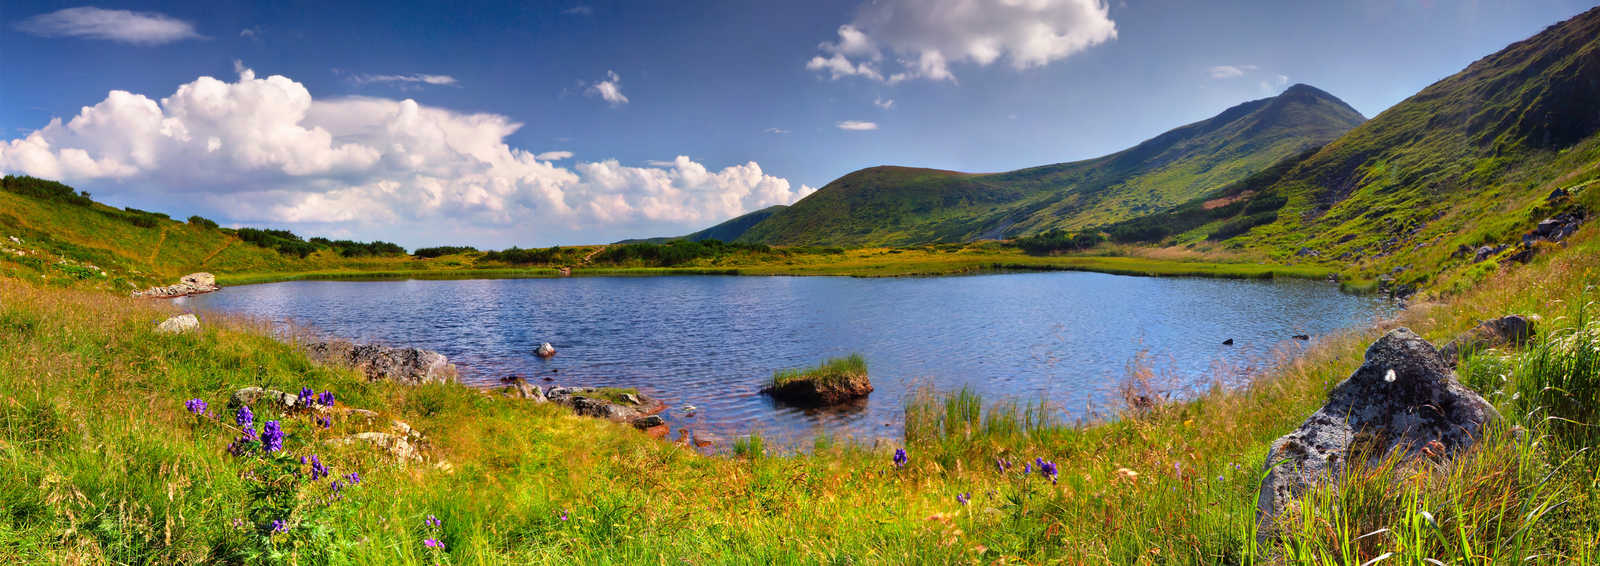 Lake in the Carpathian mountains